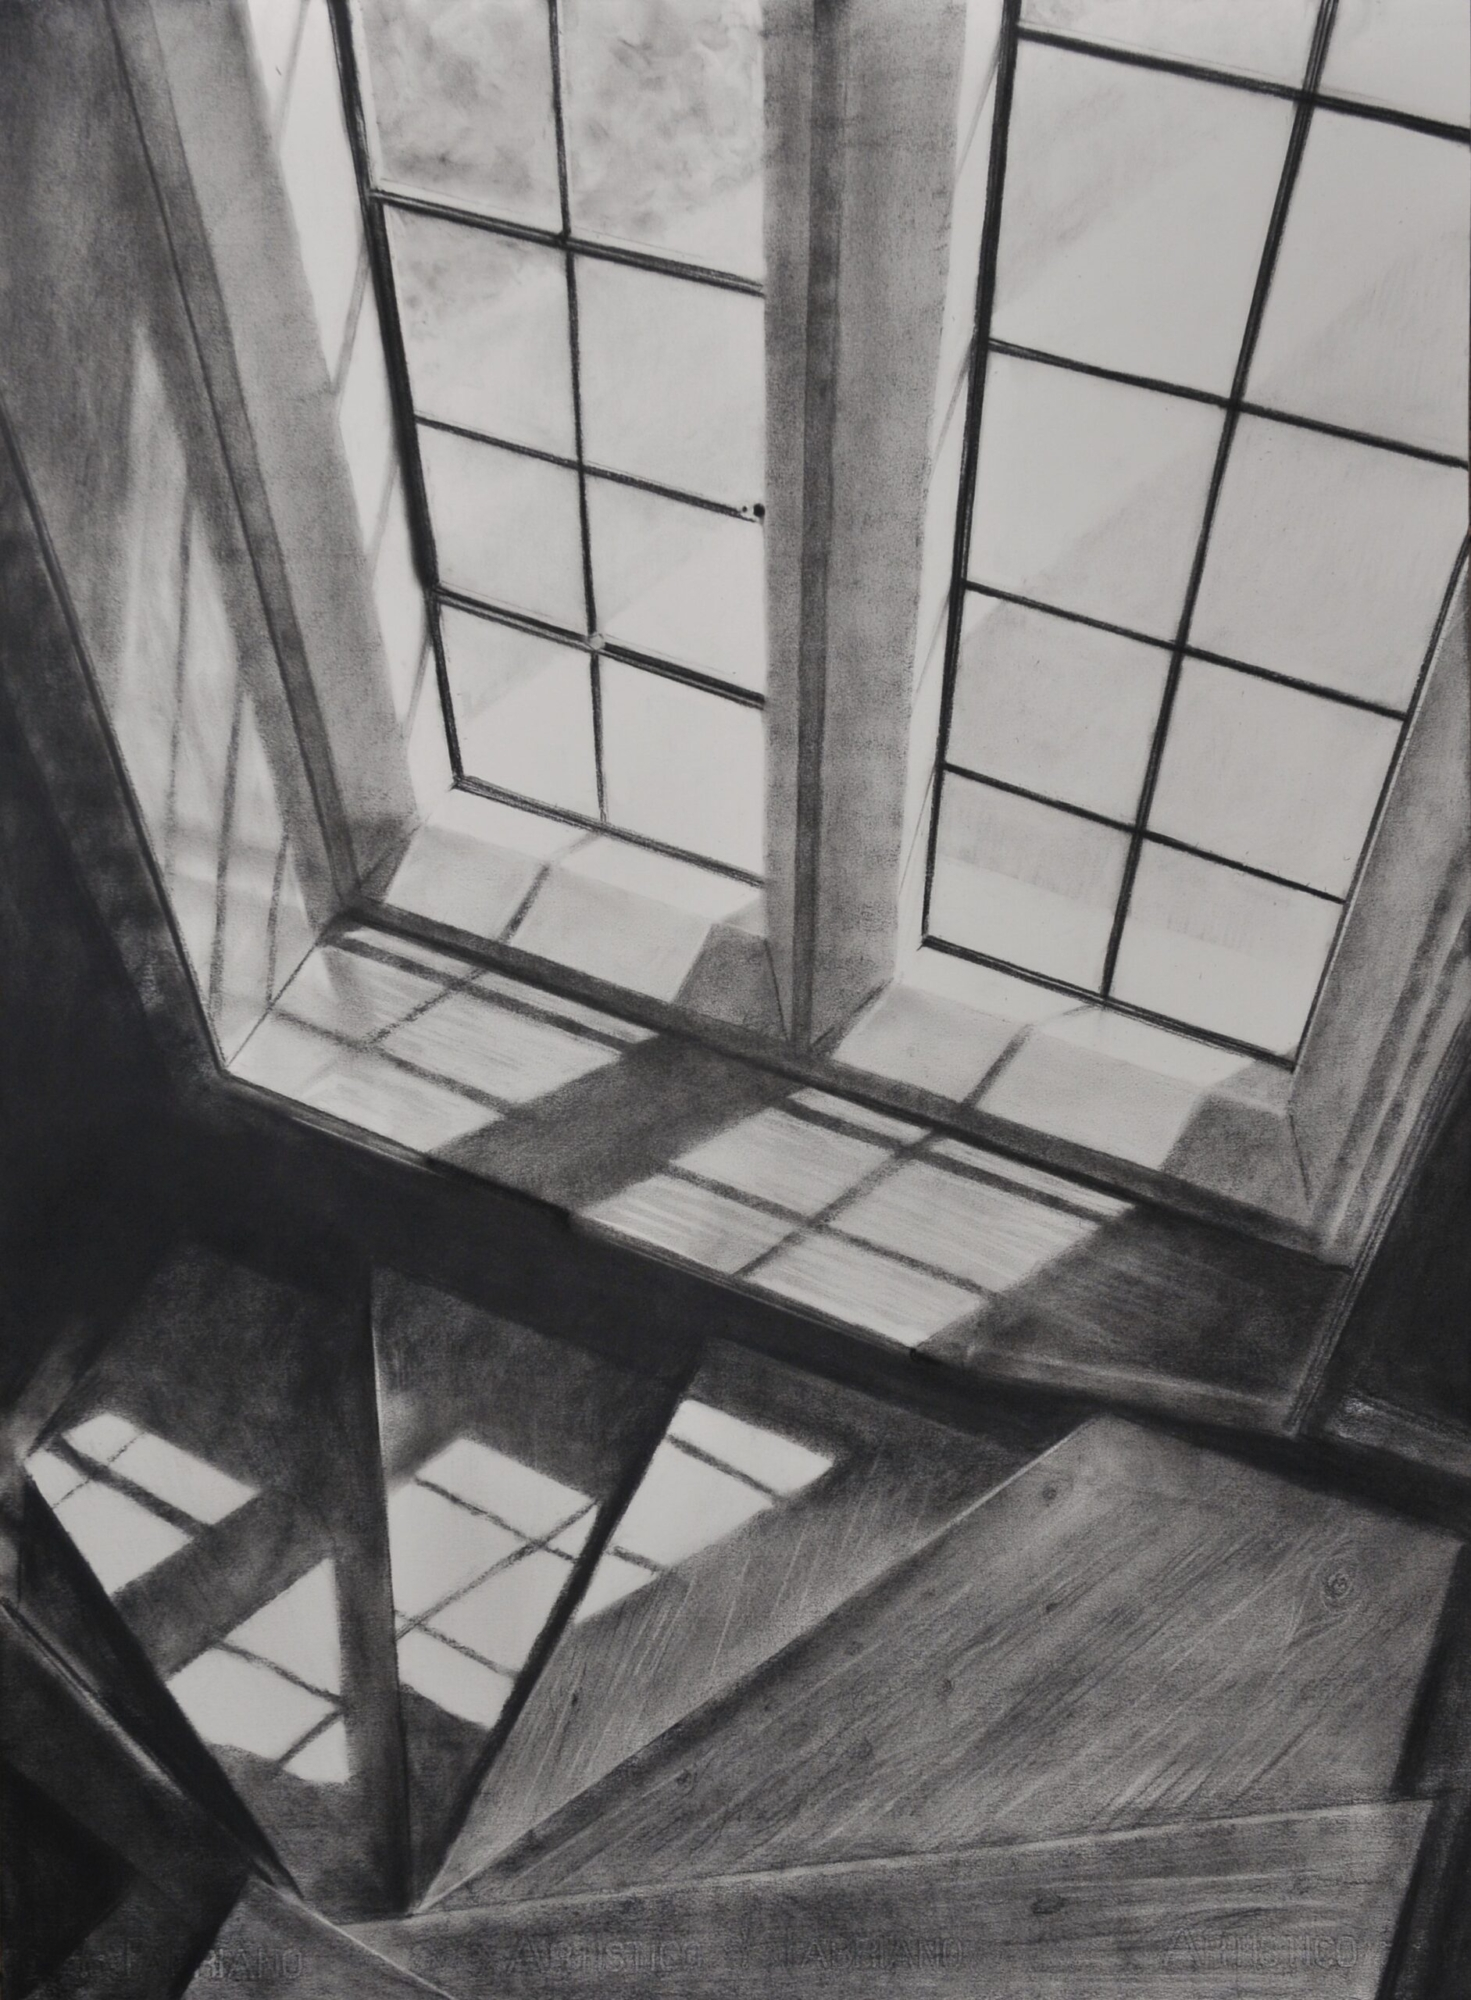 Charcoal drawing of the stairwell Pugin's House Margate